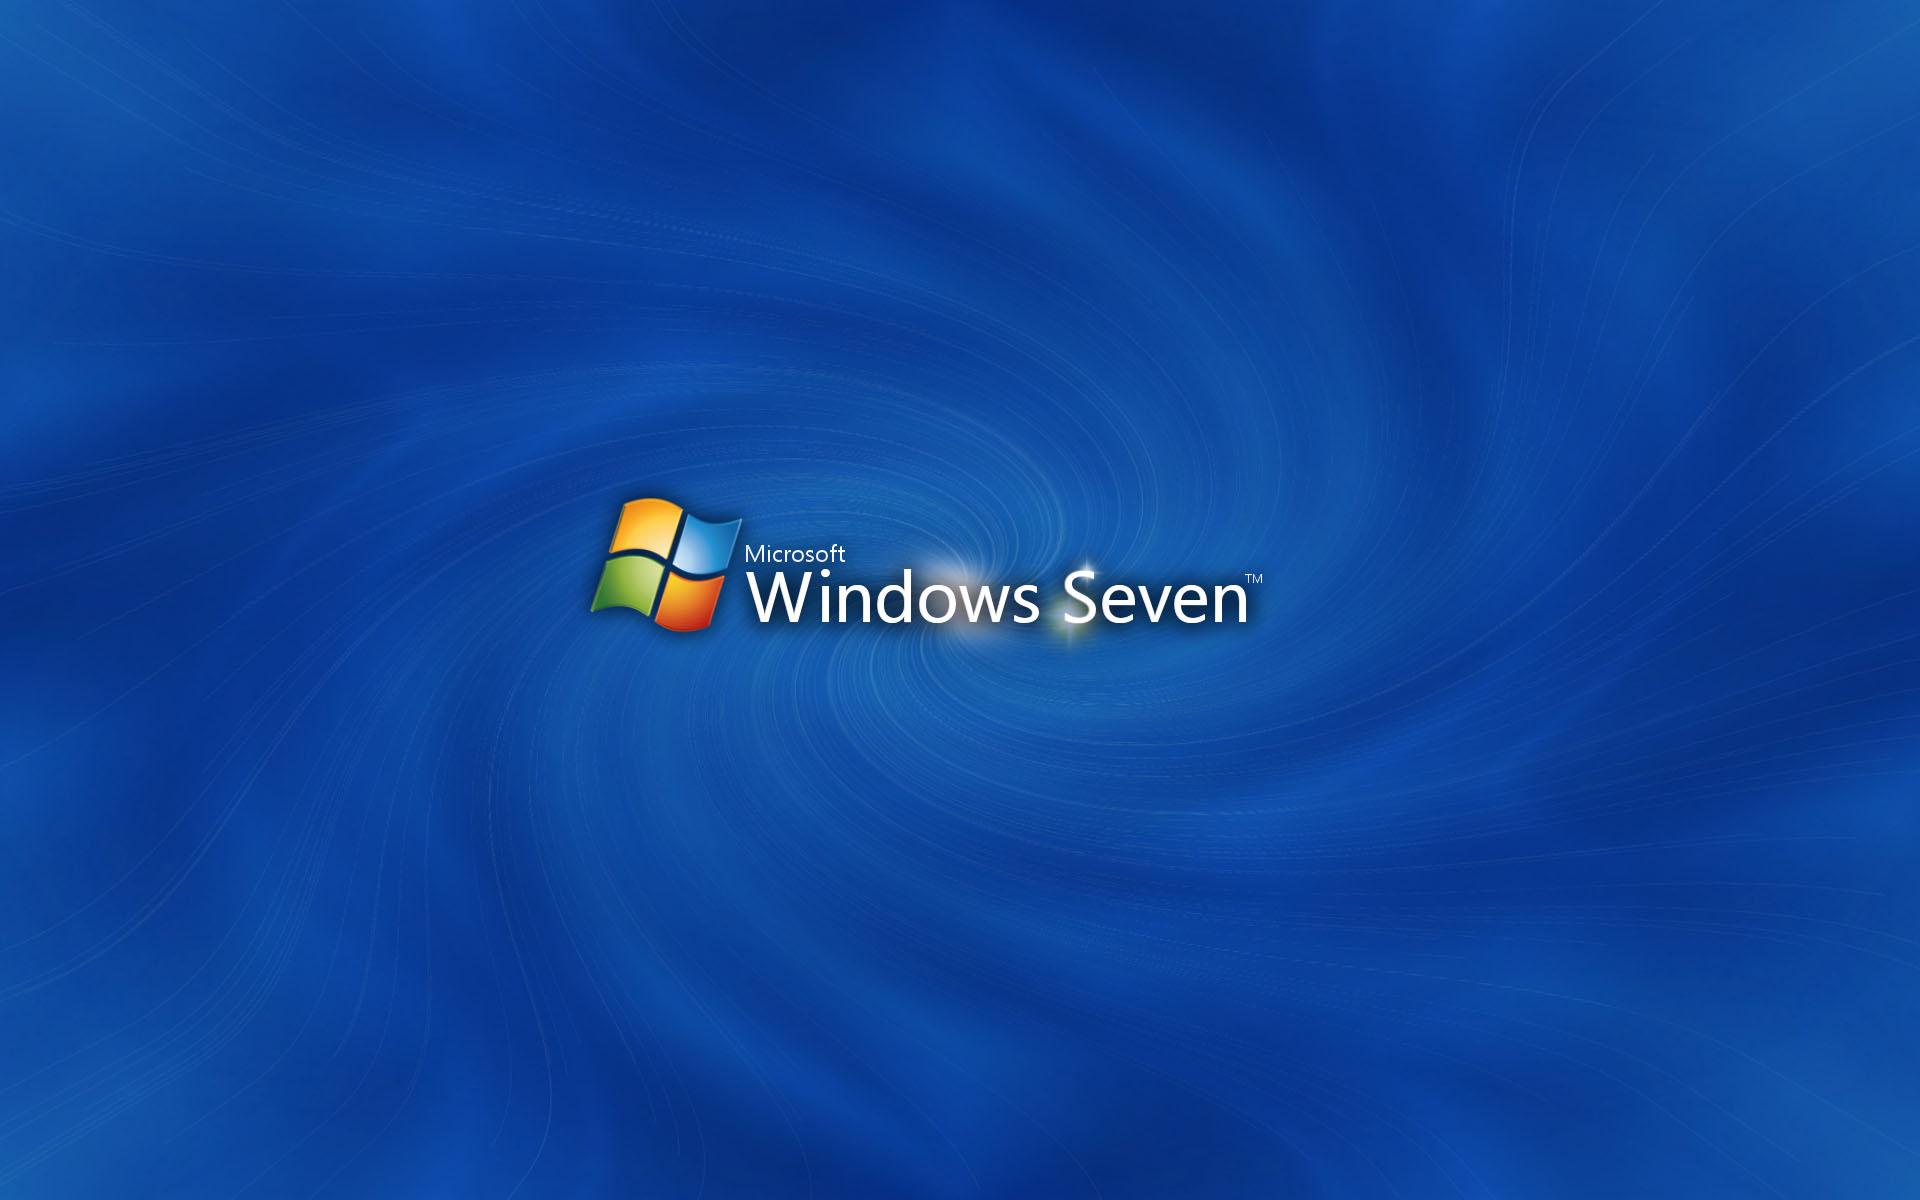 Windows Desktop Wallpaper 3690